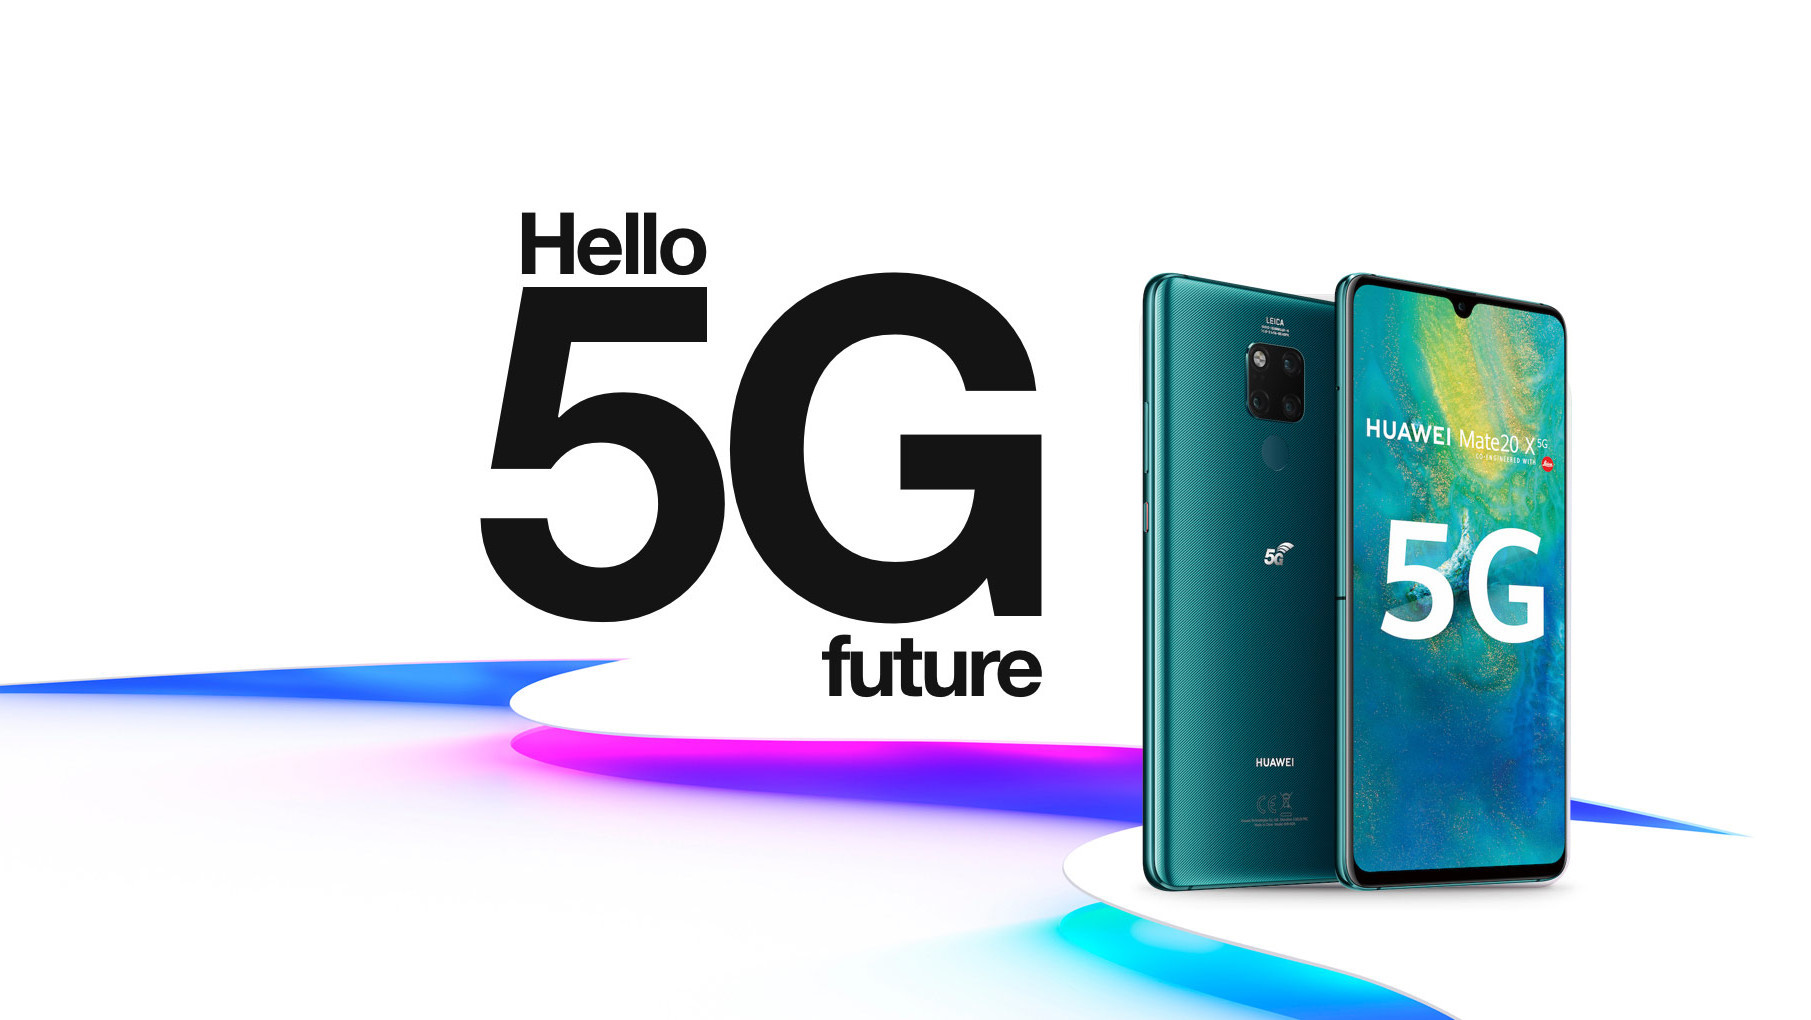 Three Set To Launch Full 5g Experience Without Speed Caps